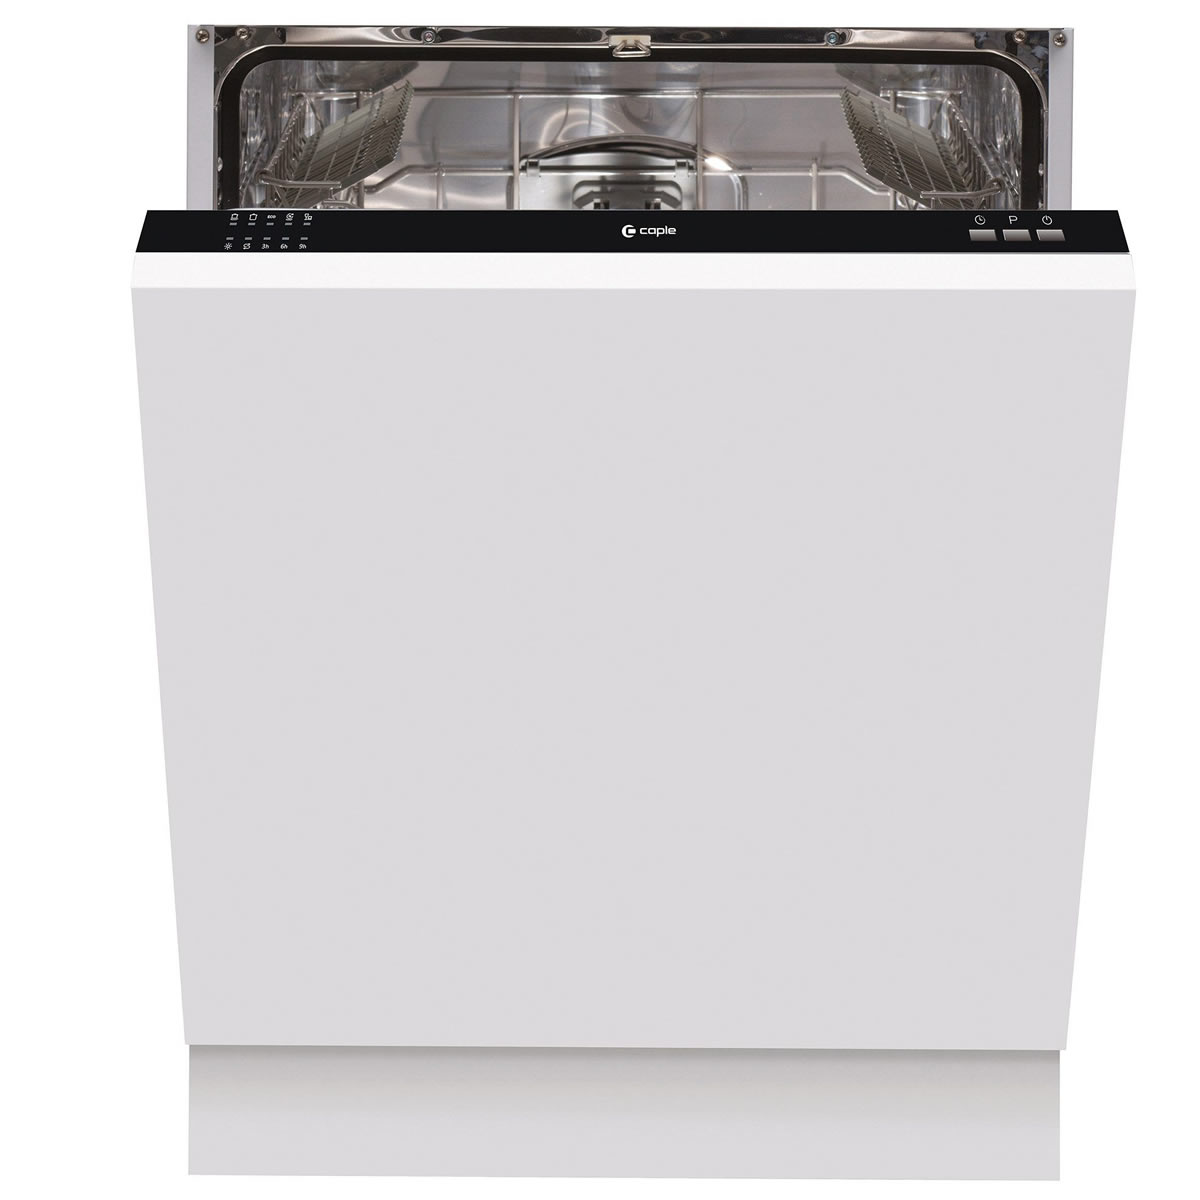 Image of 12-Place Integrated Dishwasher 5 Progs